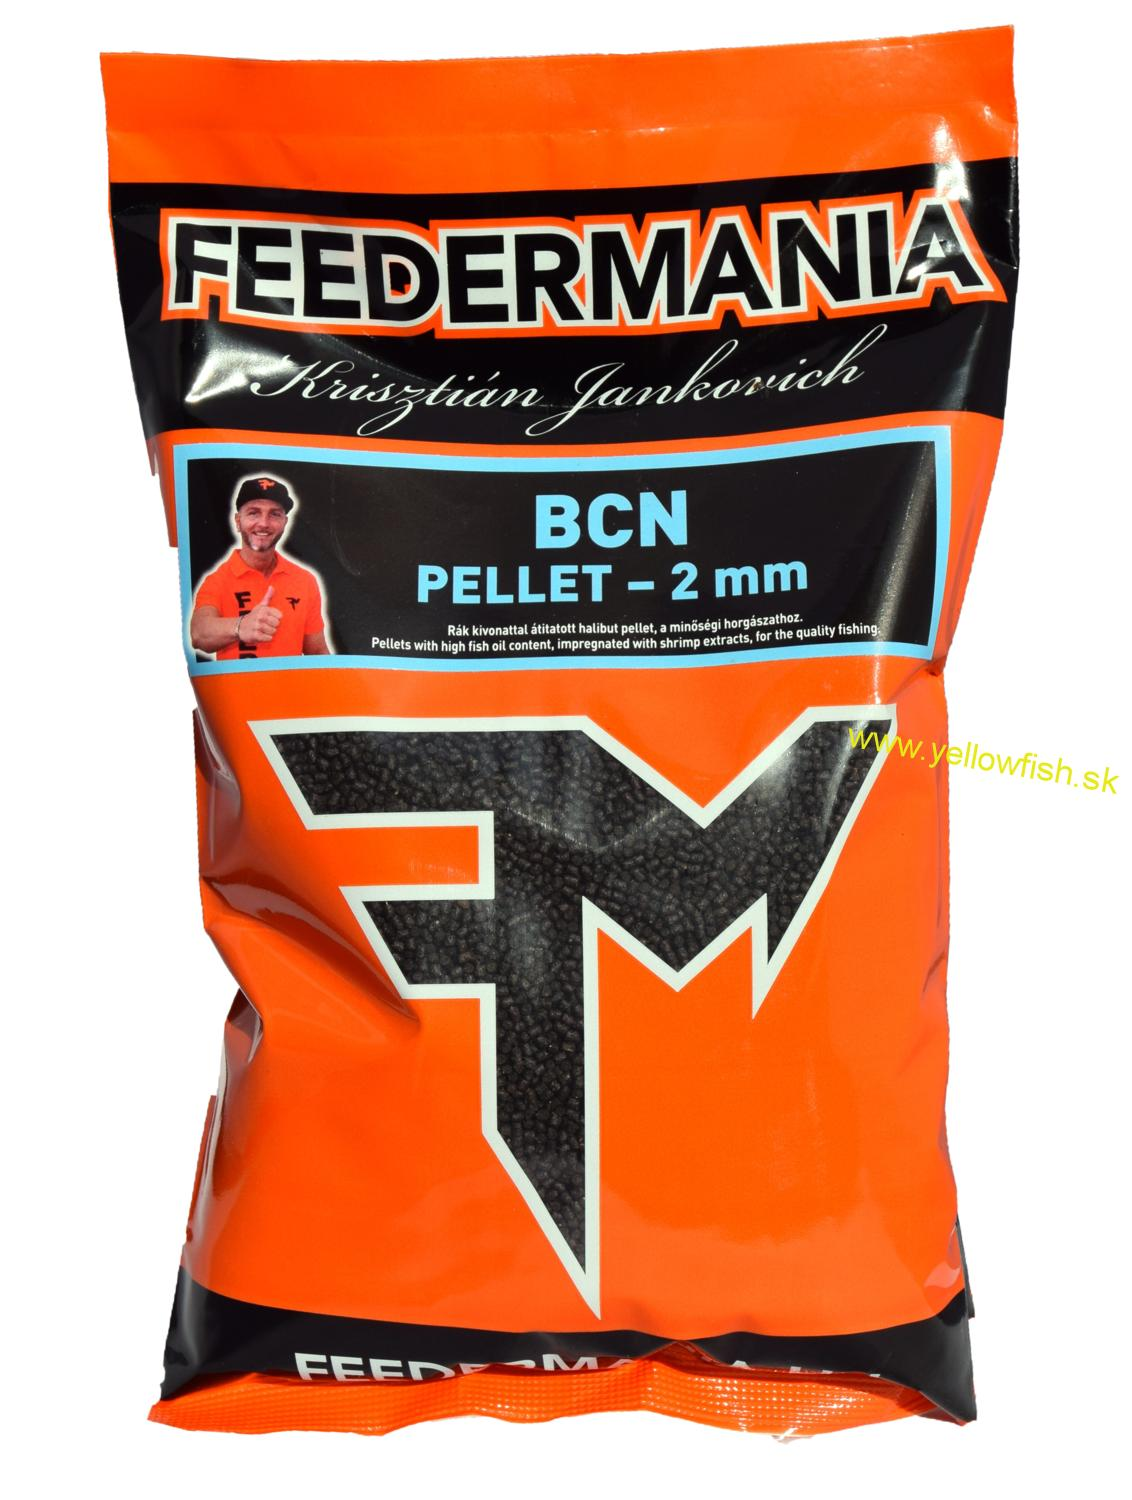 FEEDERMANIA PELETY 2MM - BCN 800G